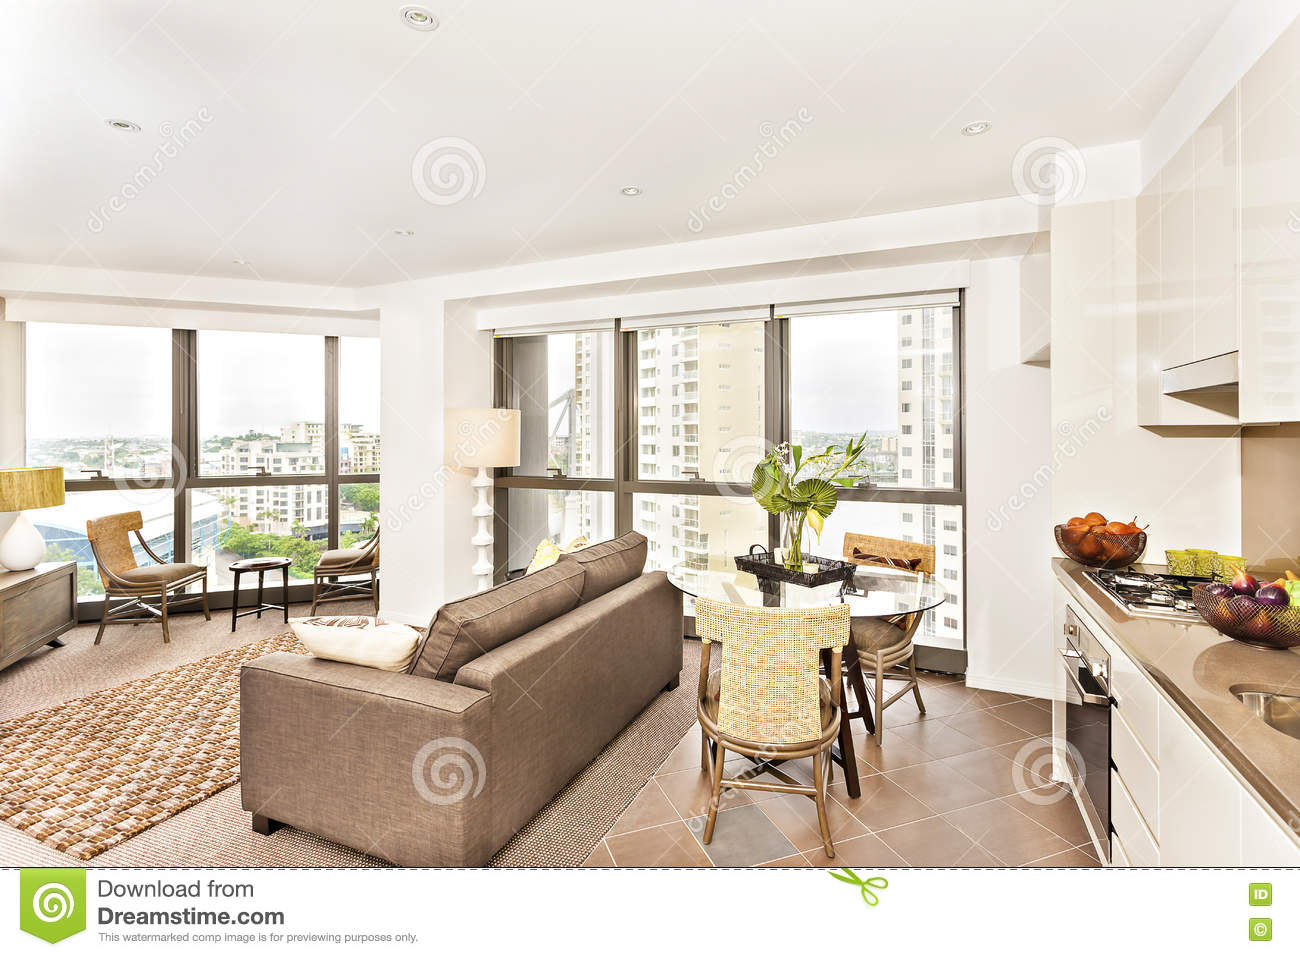 Modern room view near kitchen with sofa set